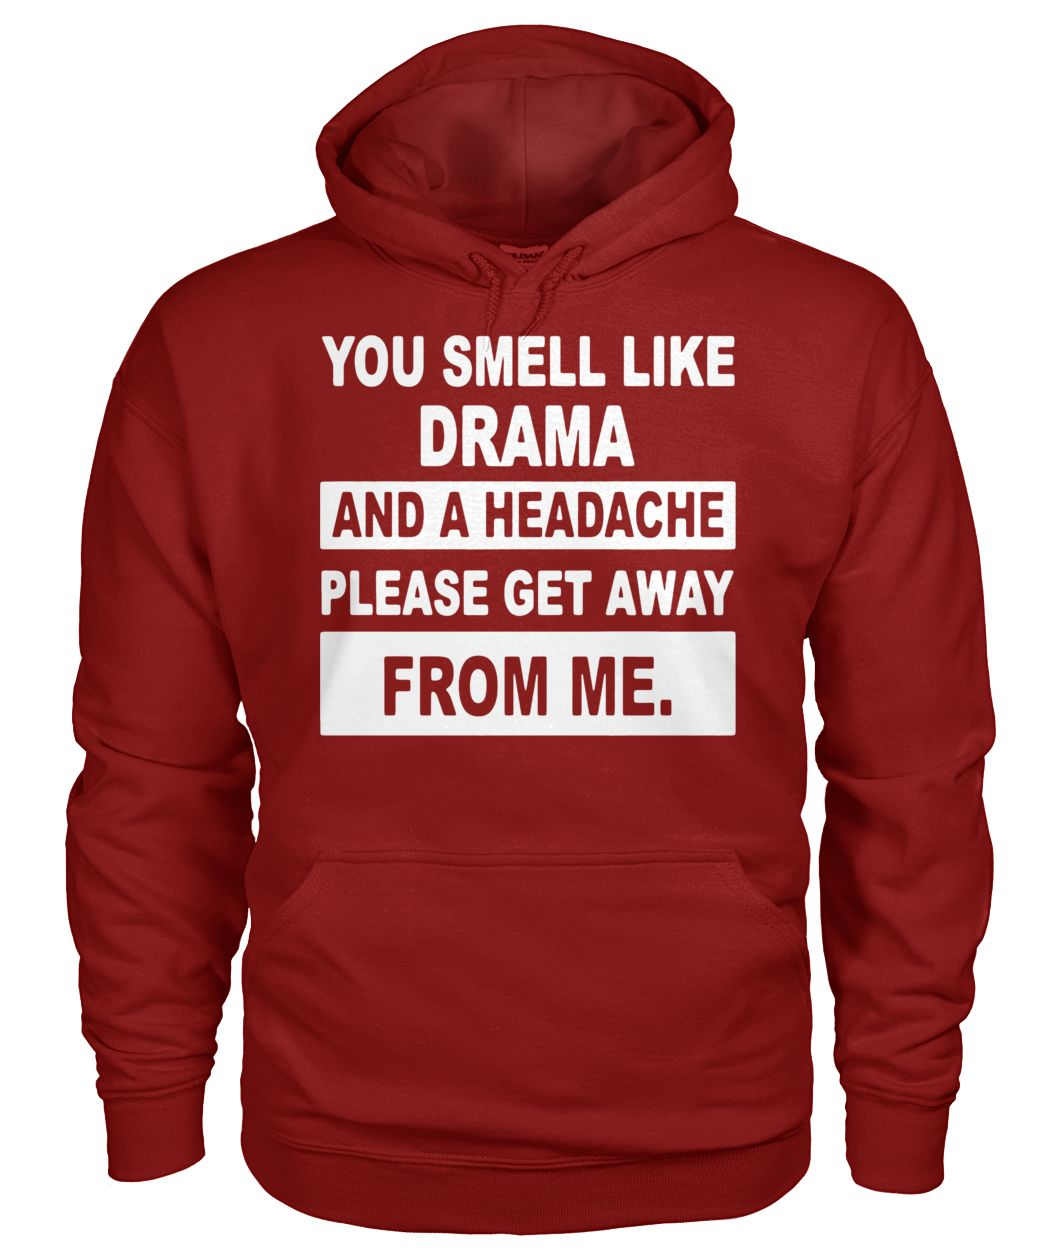 You smell like drama and a headache please get away from me gildan hoodie